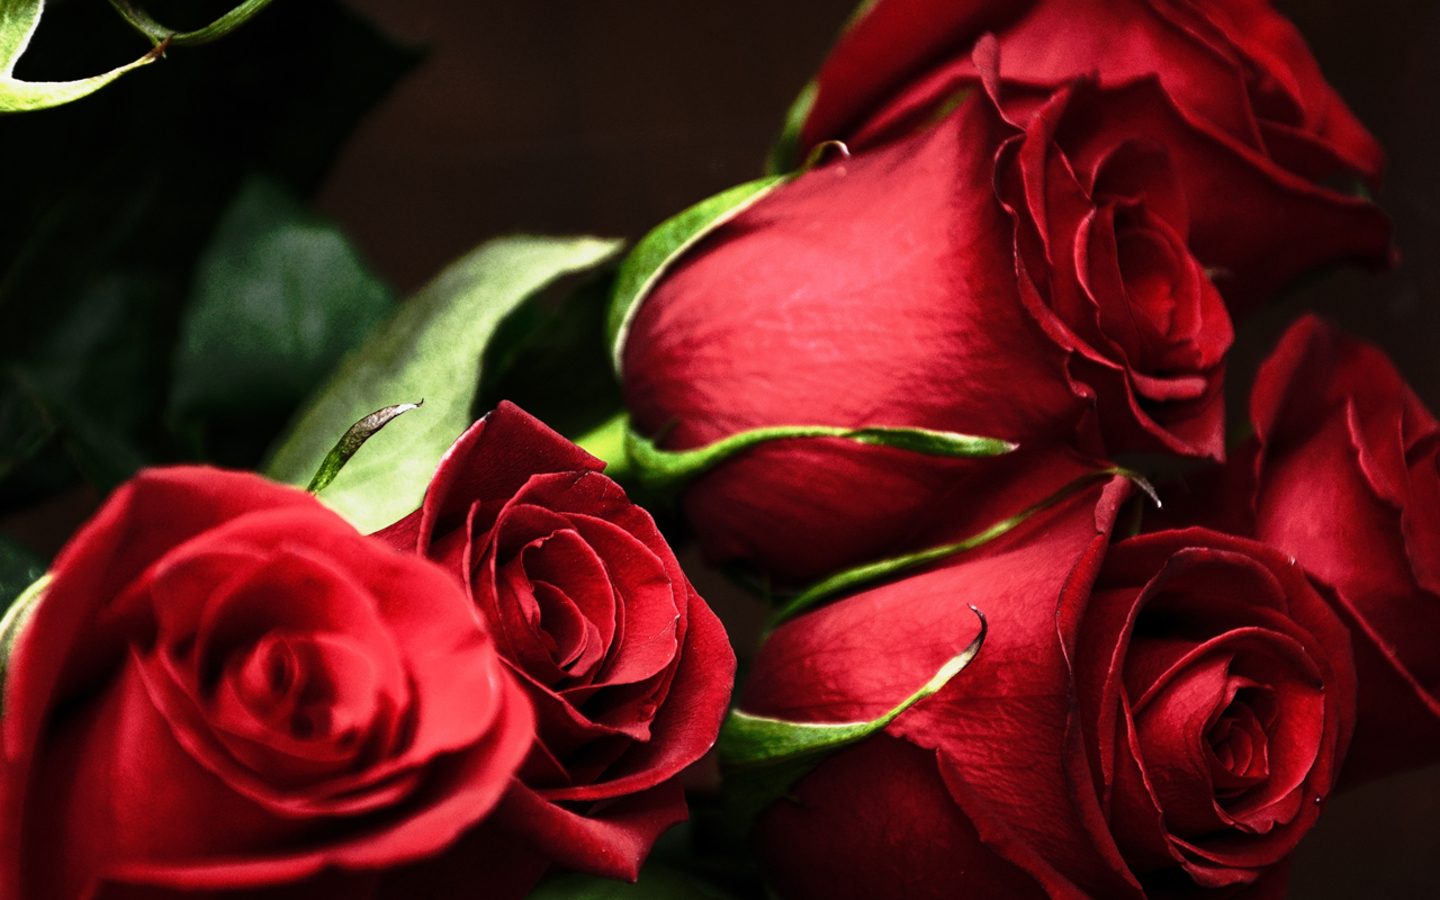 Red Rose Live Wallpaper Android Apps On Google Play 1440x900